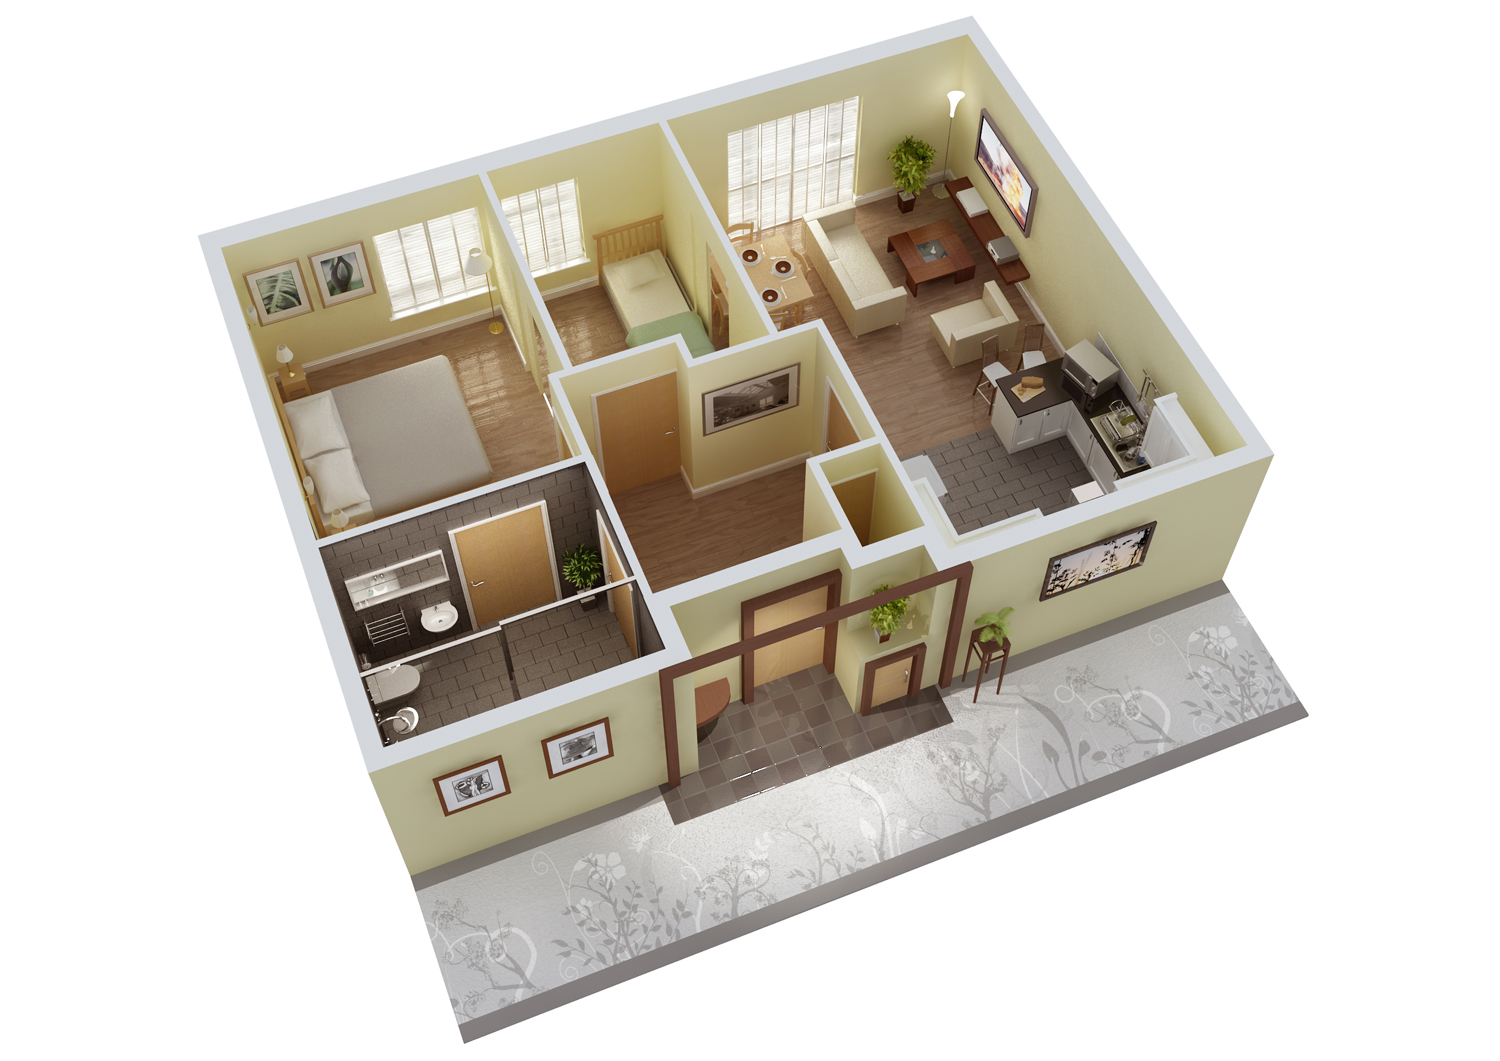 Mathematics resources project 3d floor plan for 2 bedroom house plans 3d